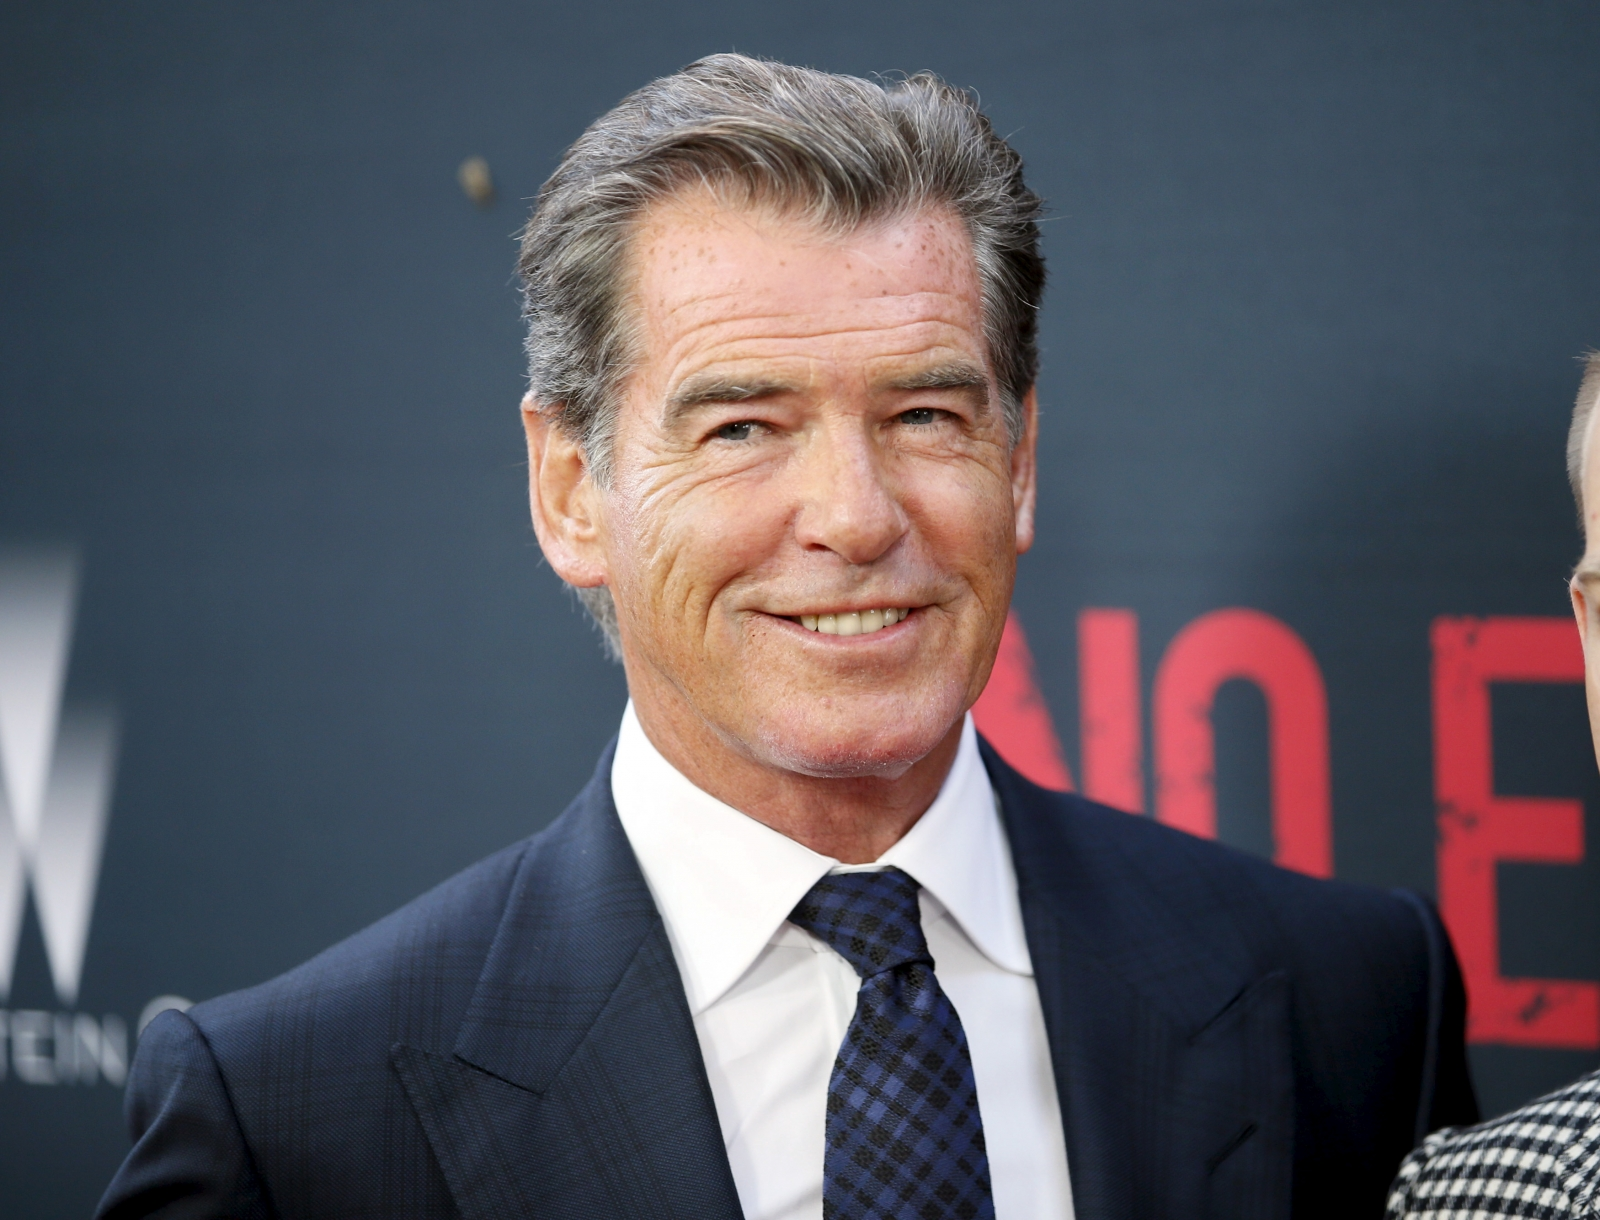 James Bond: Die Another Day actor Pierce Brosnan hopes for gay 007 in ...: www.ibtimes.co.uk/james-bond-die-another-day-actor-pierce-brosnan...